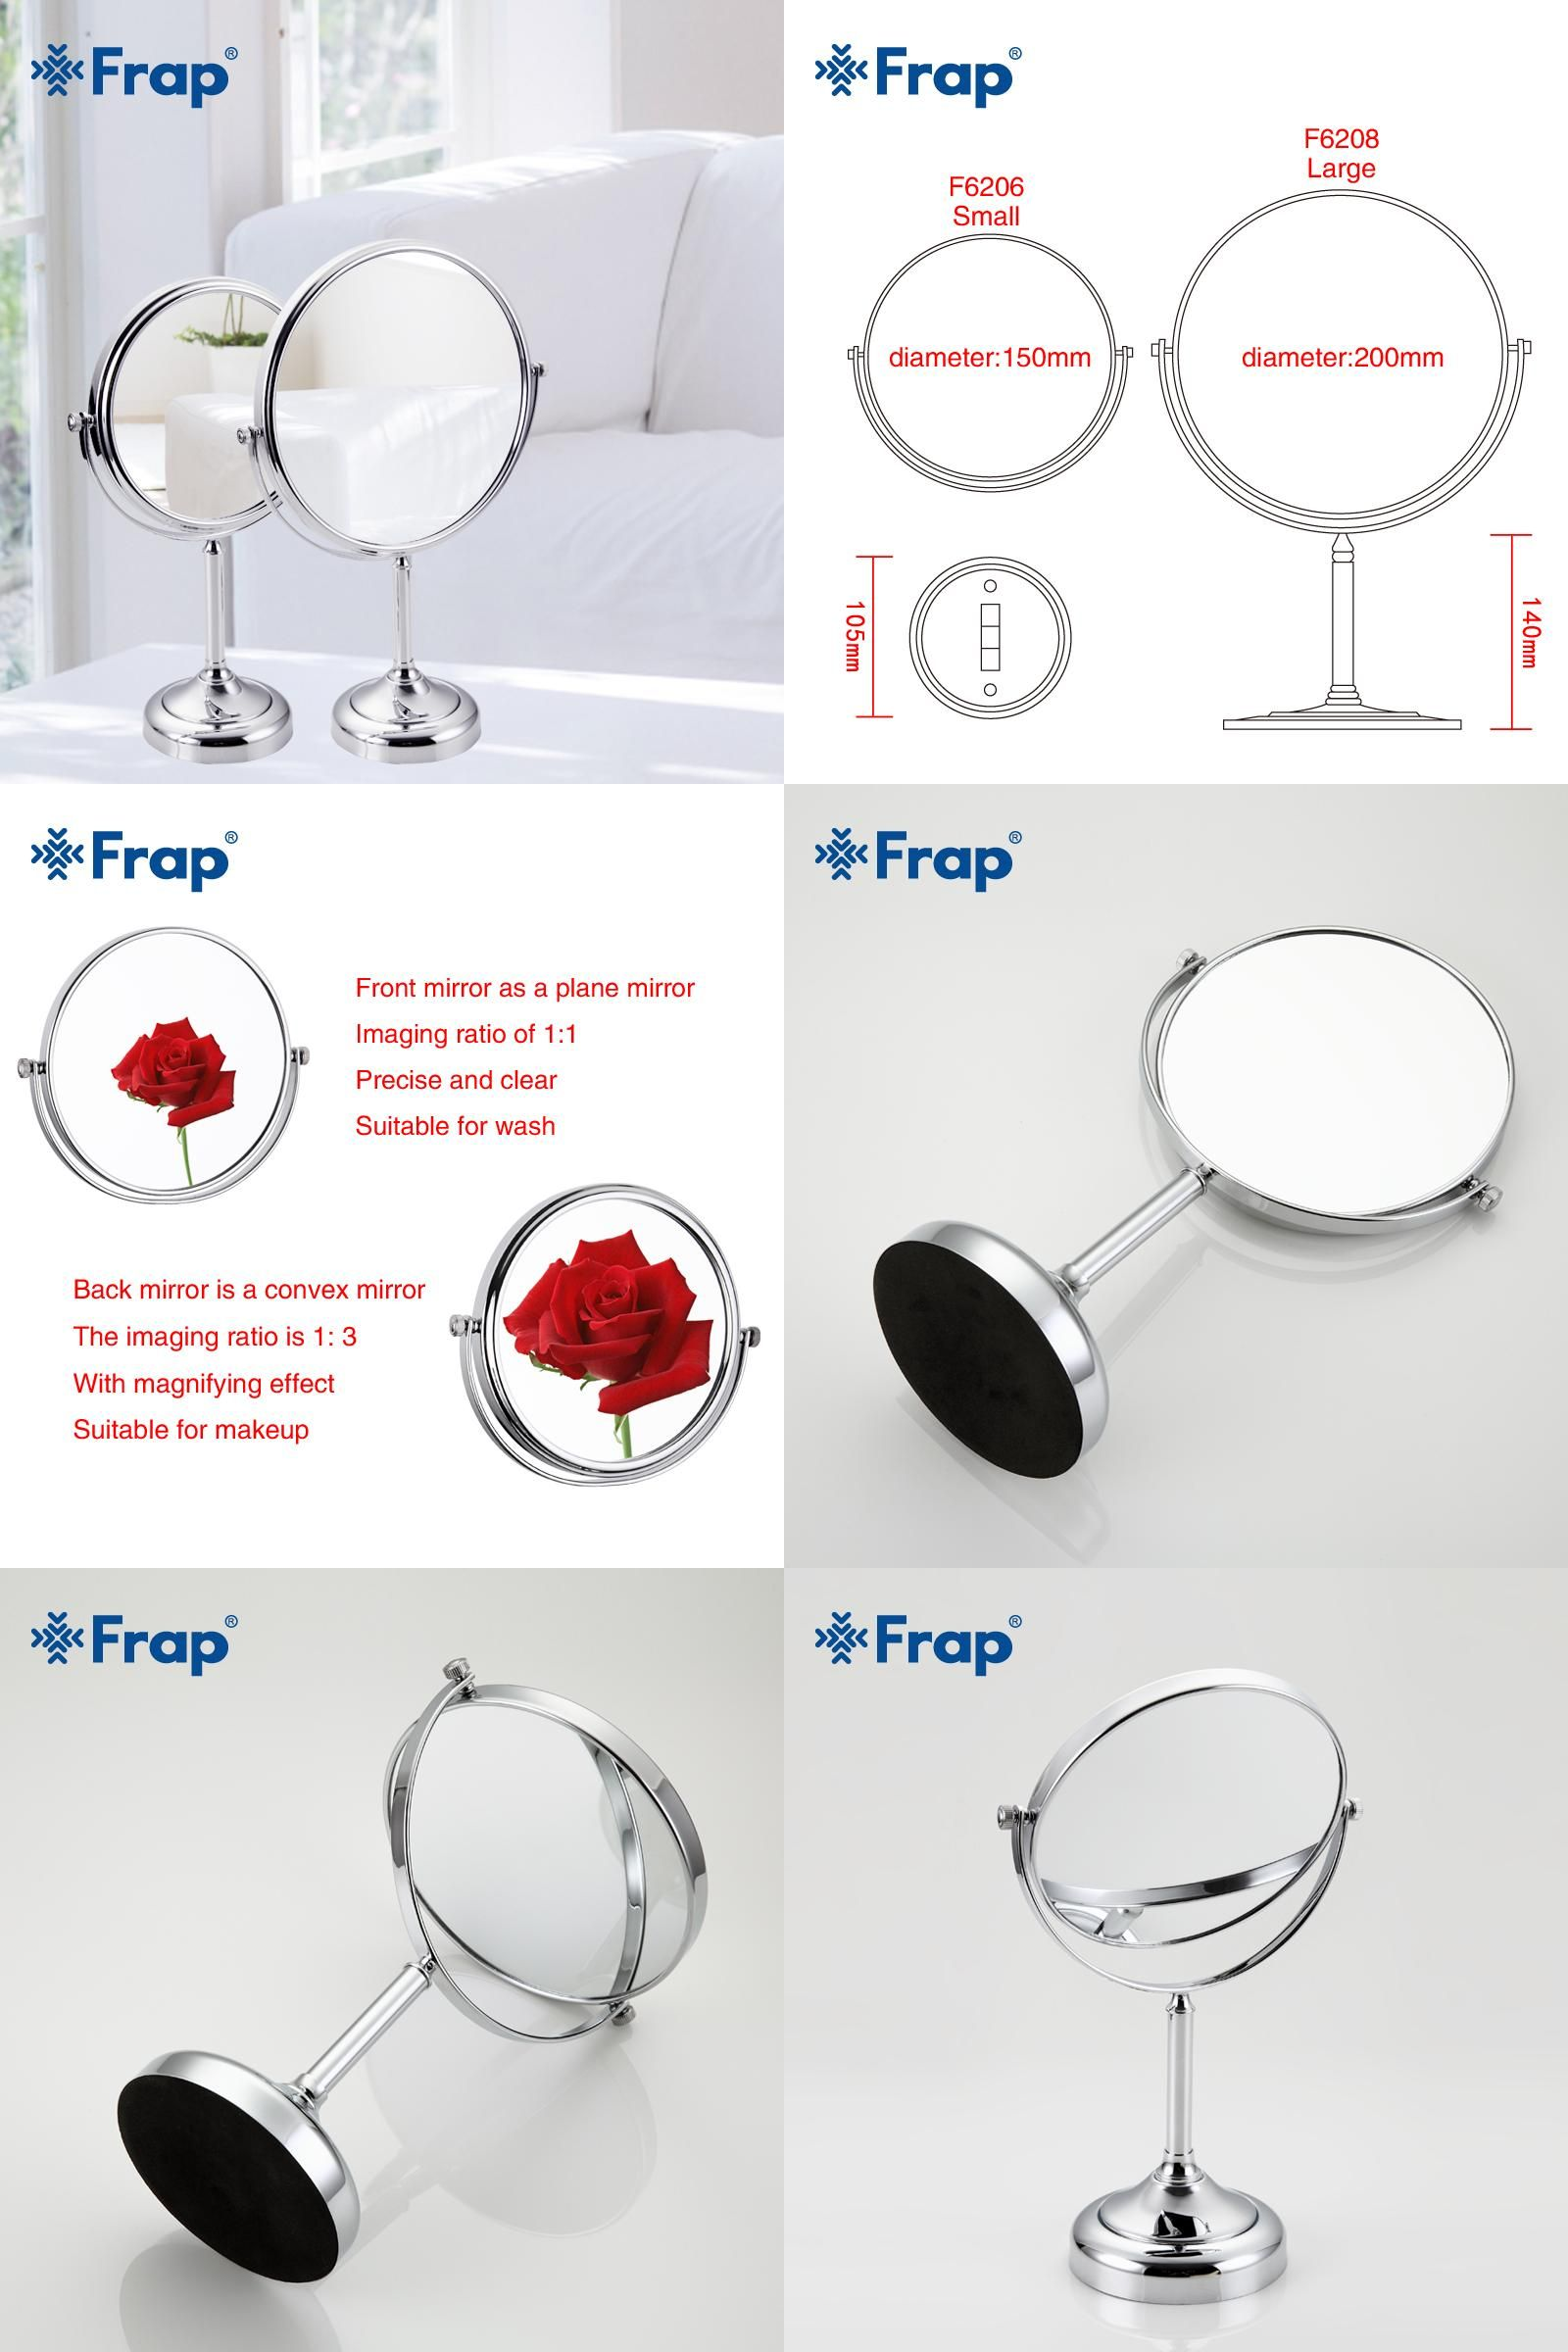 Bathroom Hardware Frap New Arrival Makeup Mirror Professional Vanity Mirror Bathroom Accessories 180 Rotating Free Magnifier F6206 F6208 Home Improvement